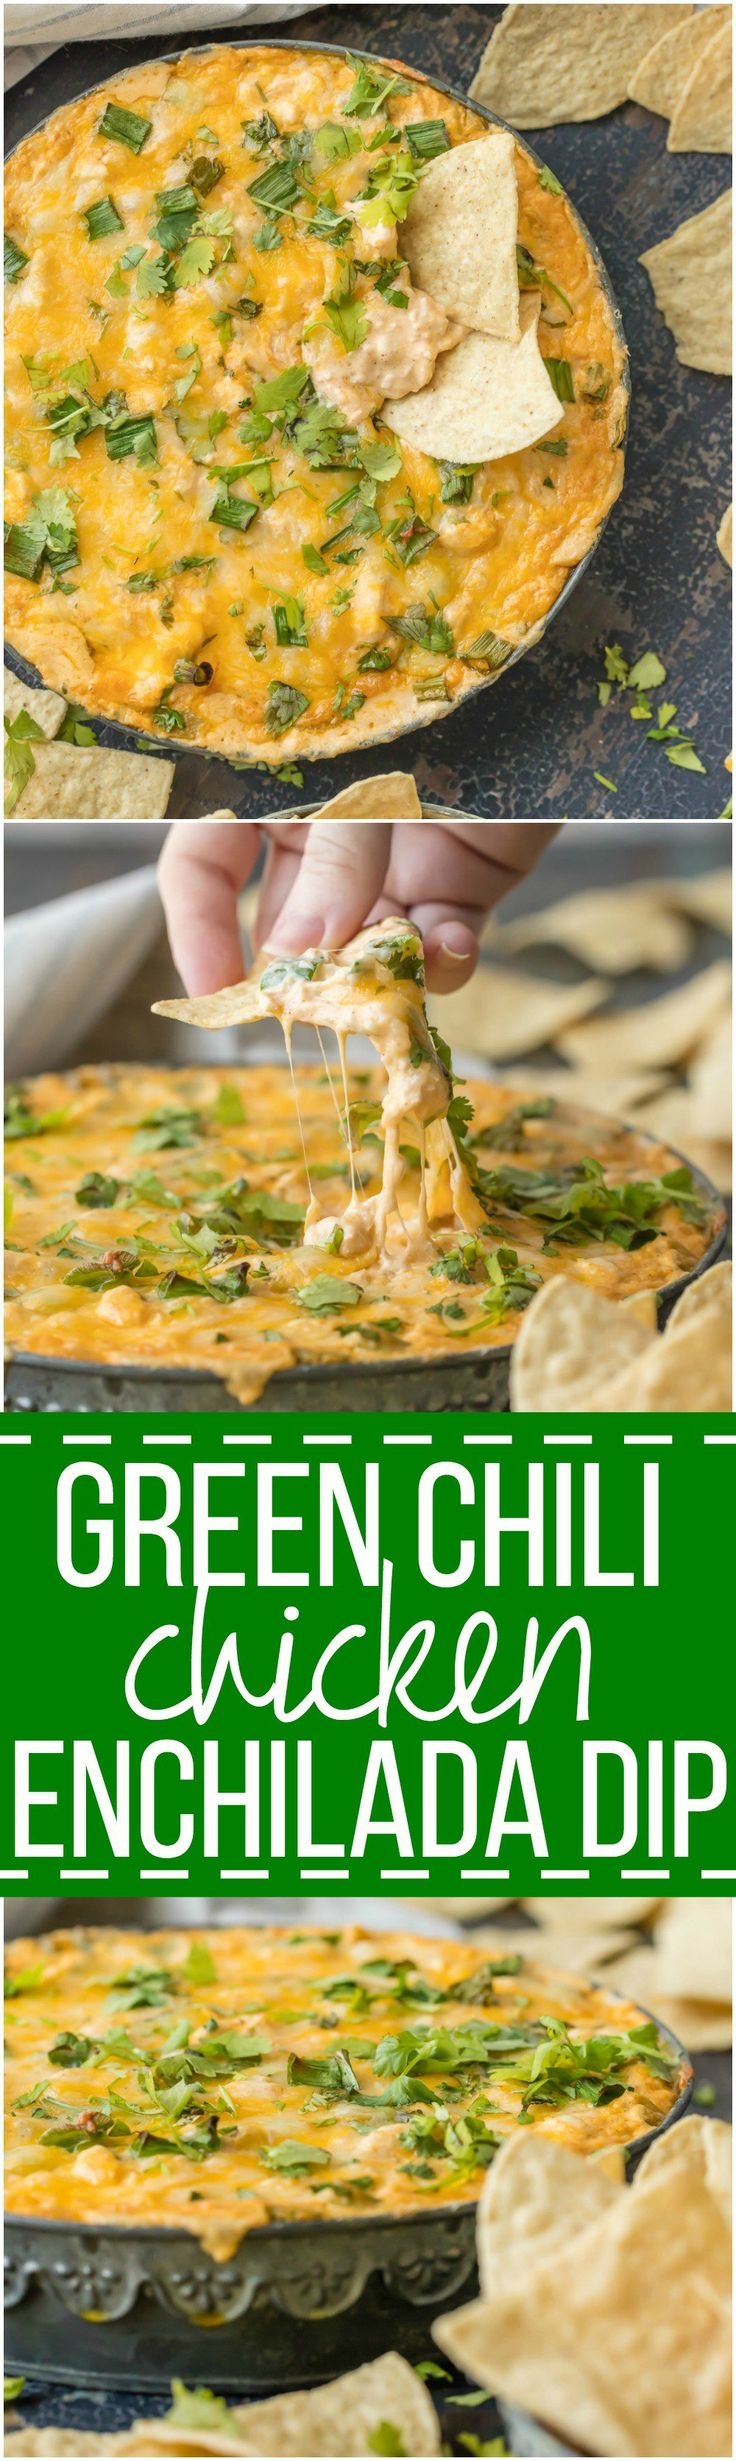 This GREEN CHILE CHICKEN ENCHILADA DIP is the ultimate party food, loaded with chicken, green chiles, cream cheese, sour cream, and so much more. It will be gone in minutes from any get together.  via @beckygallhardin